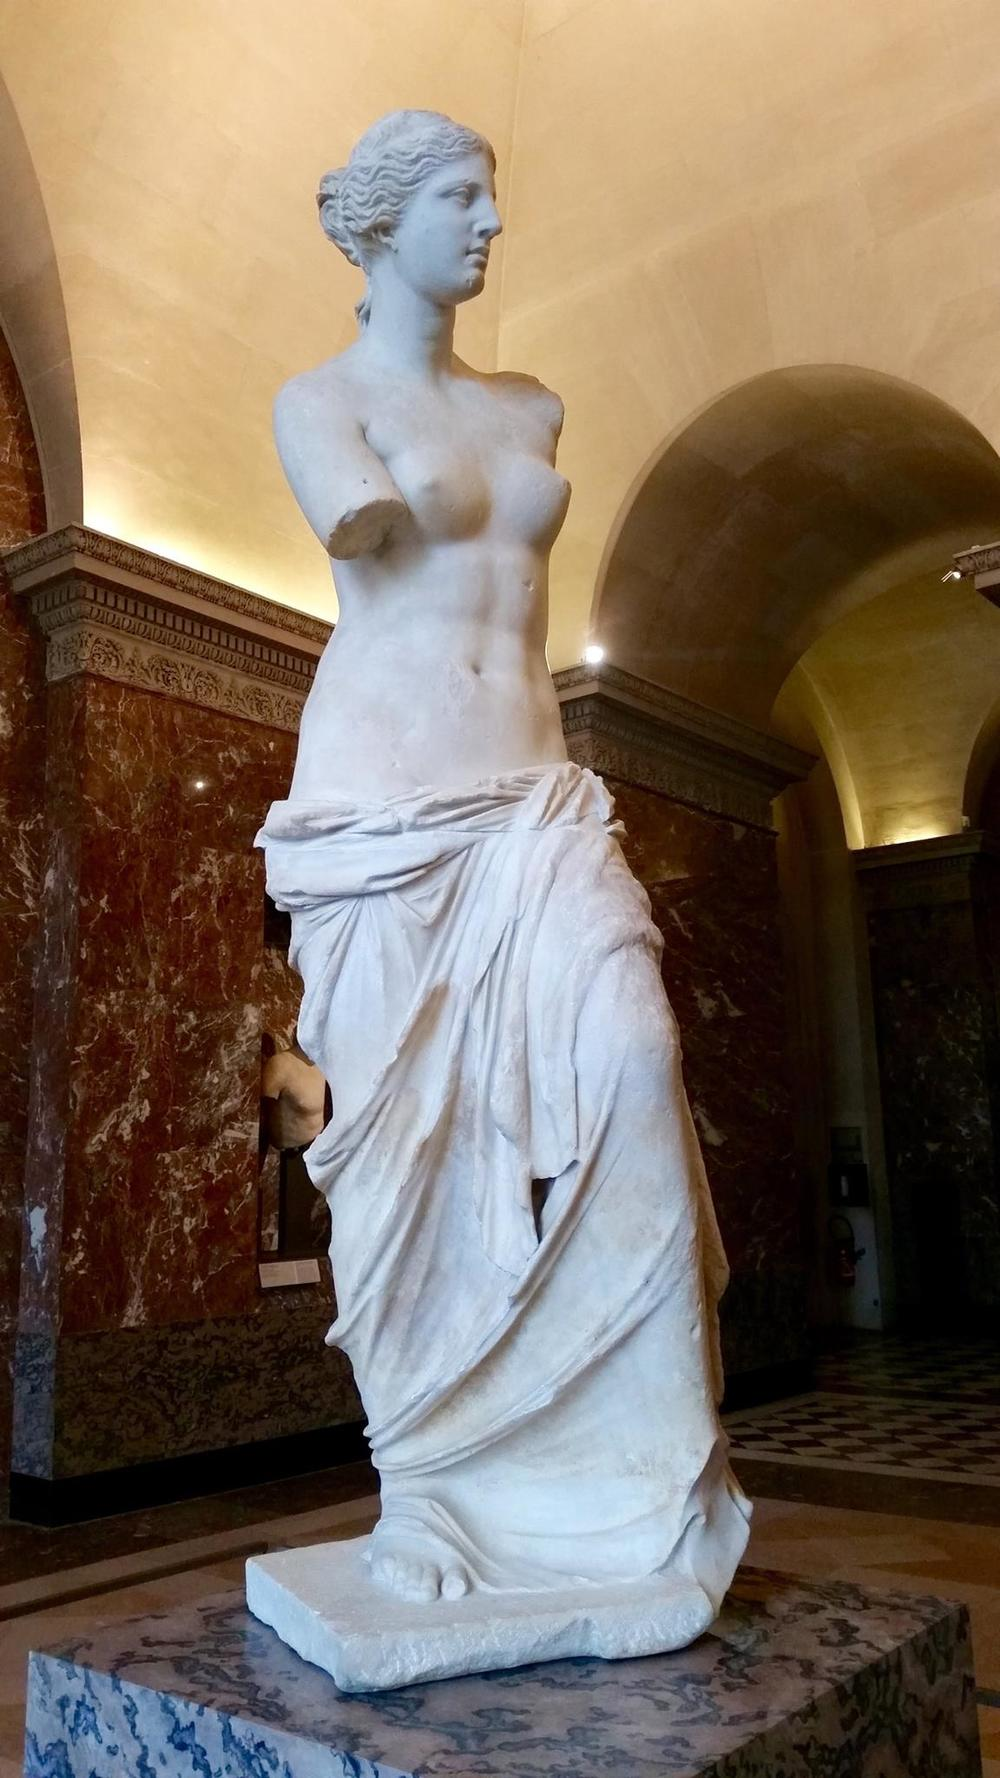 The Venus de Milo. They say she's a size 12-14 today. #realmarblehascurves